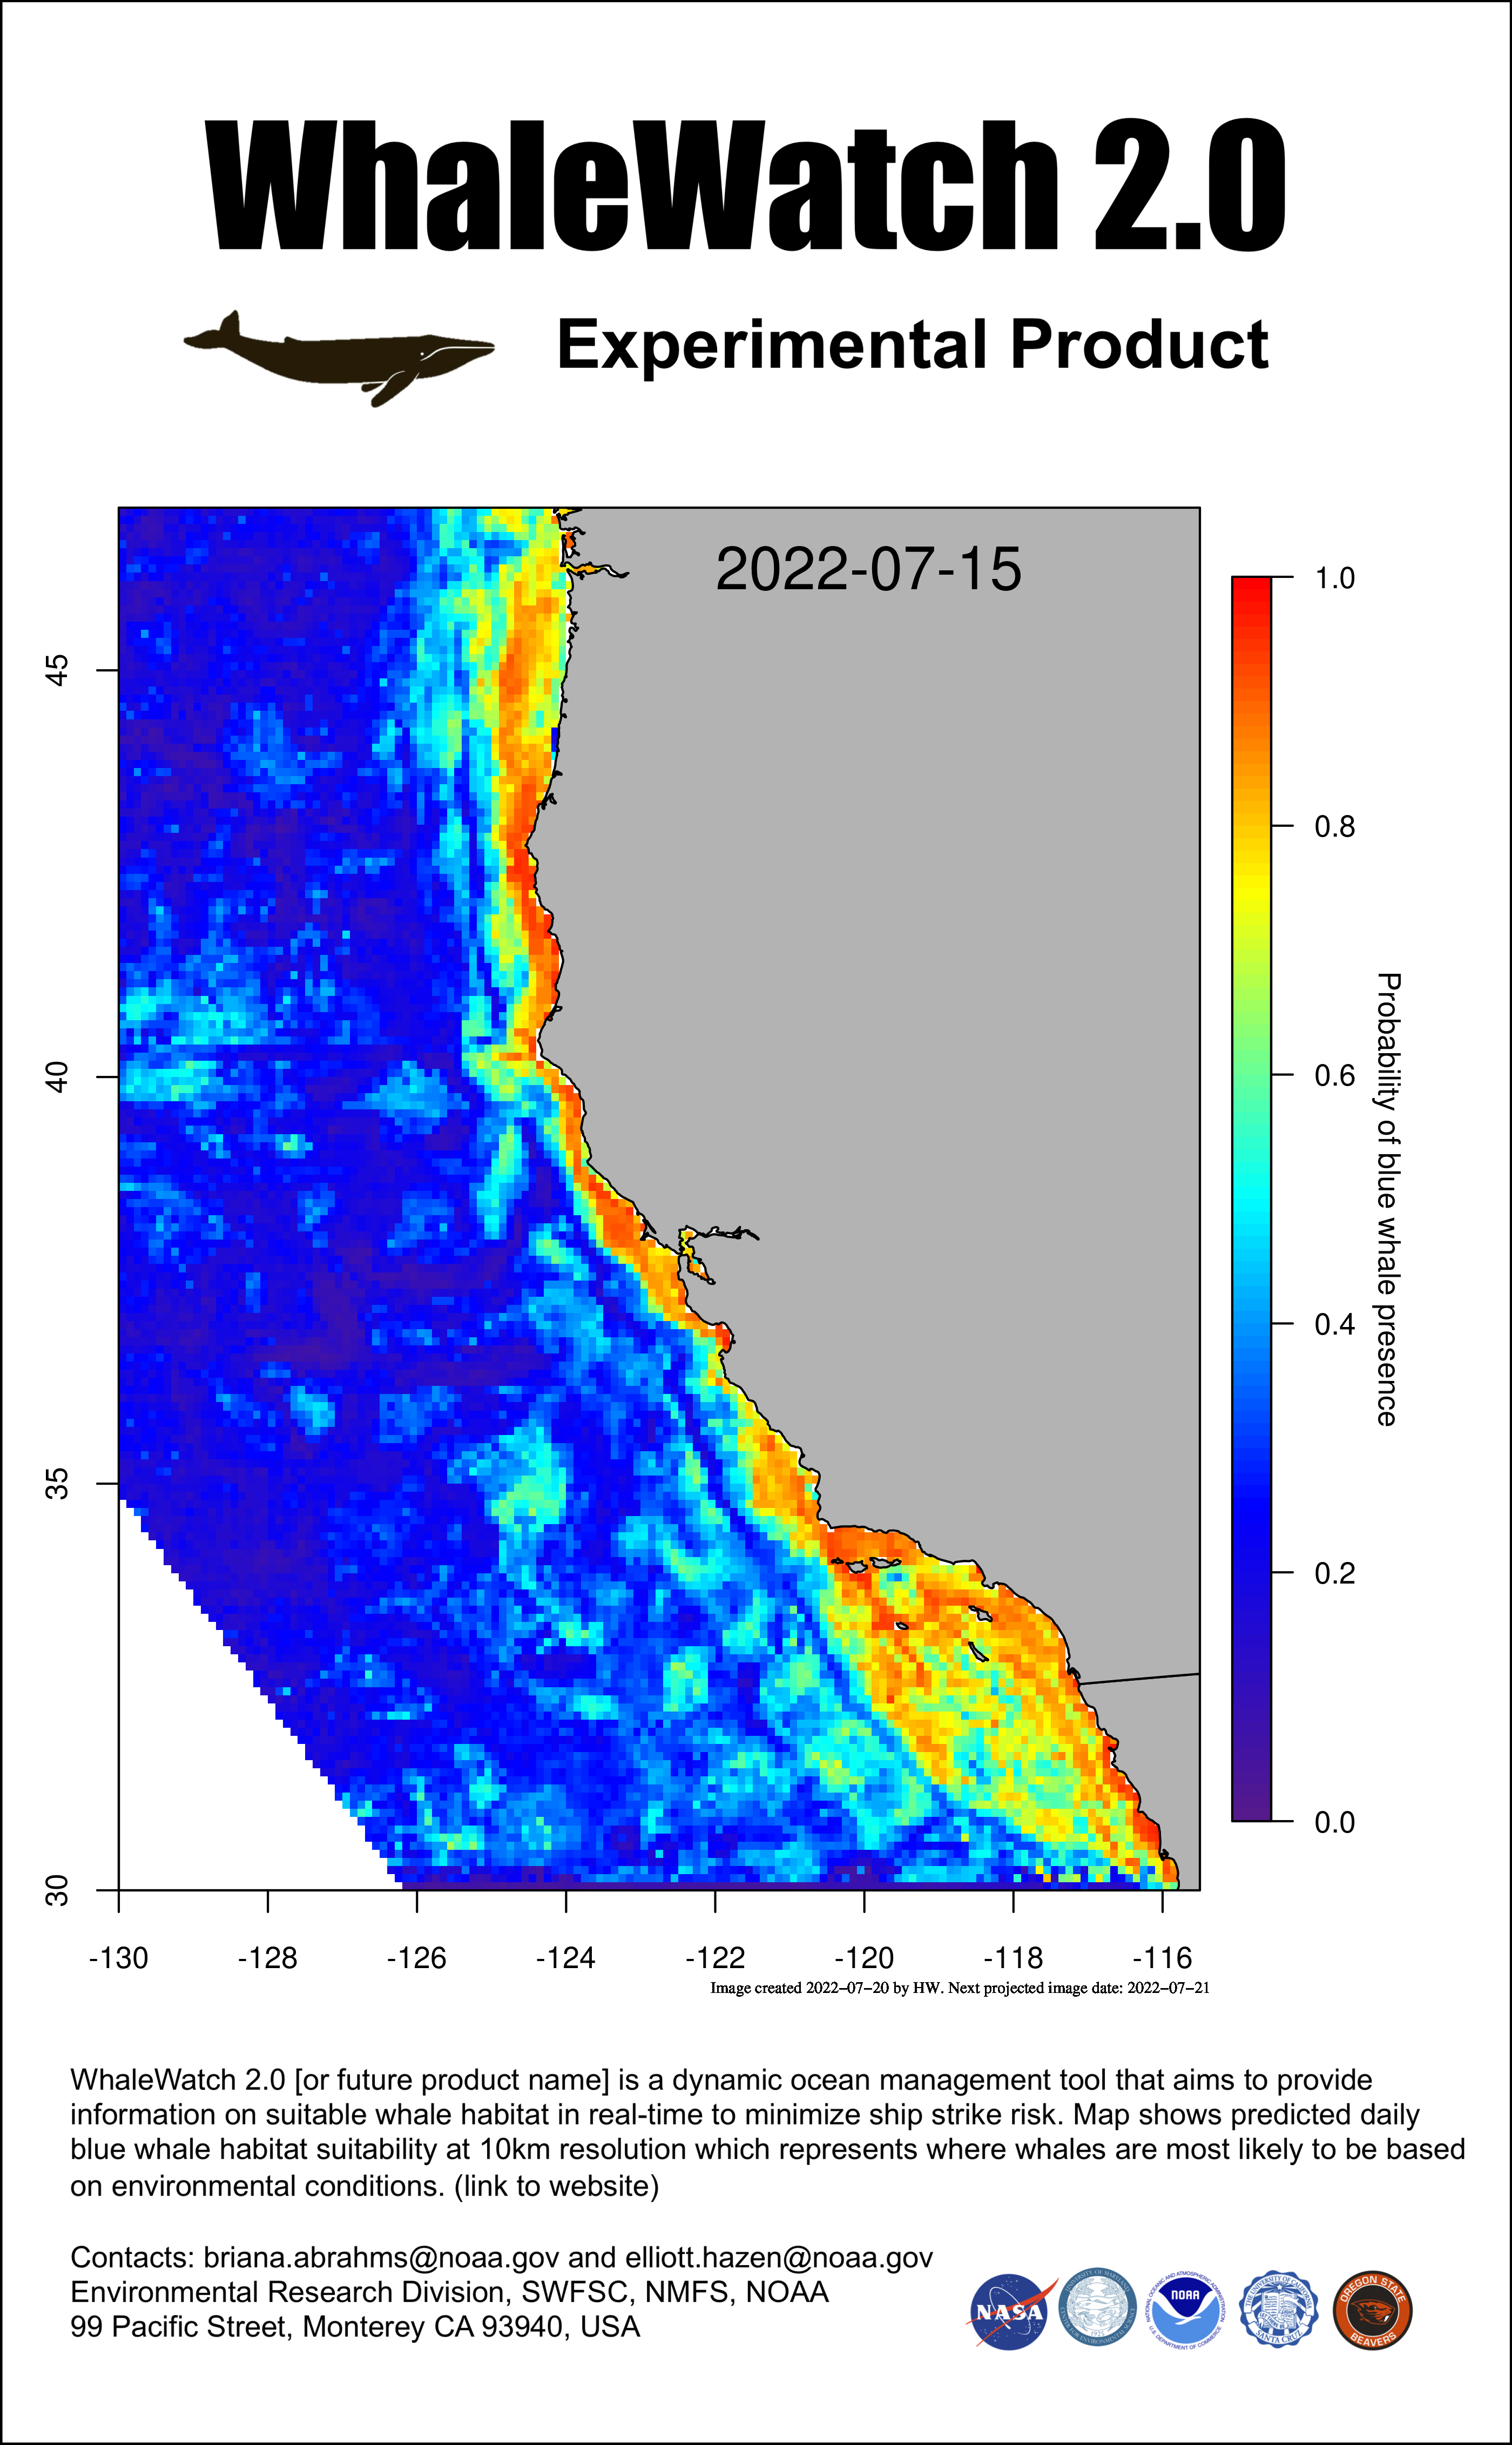 Mean sea surface temperature off Southern California - 3 days ago